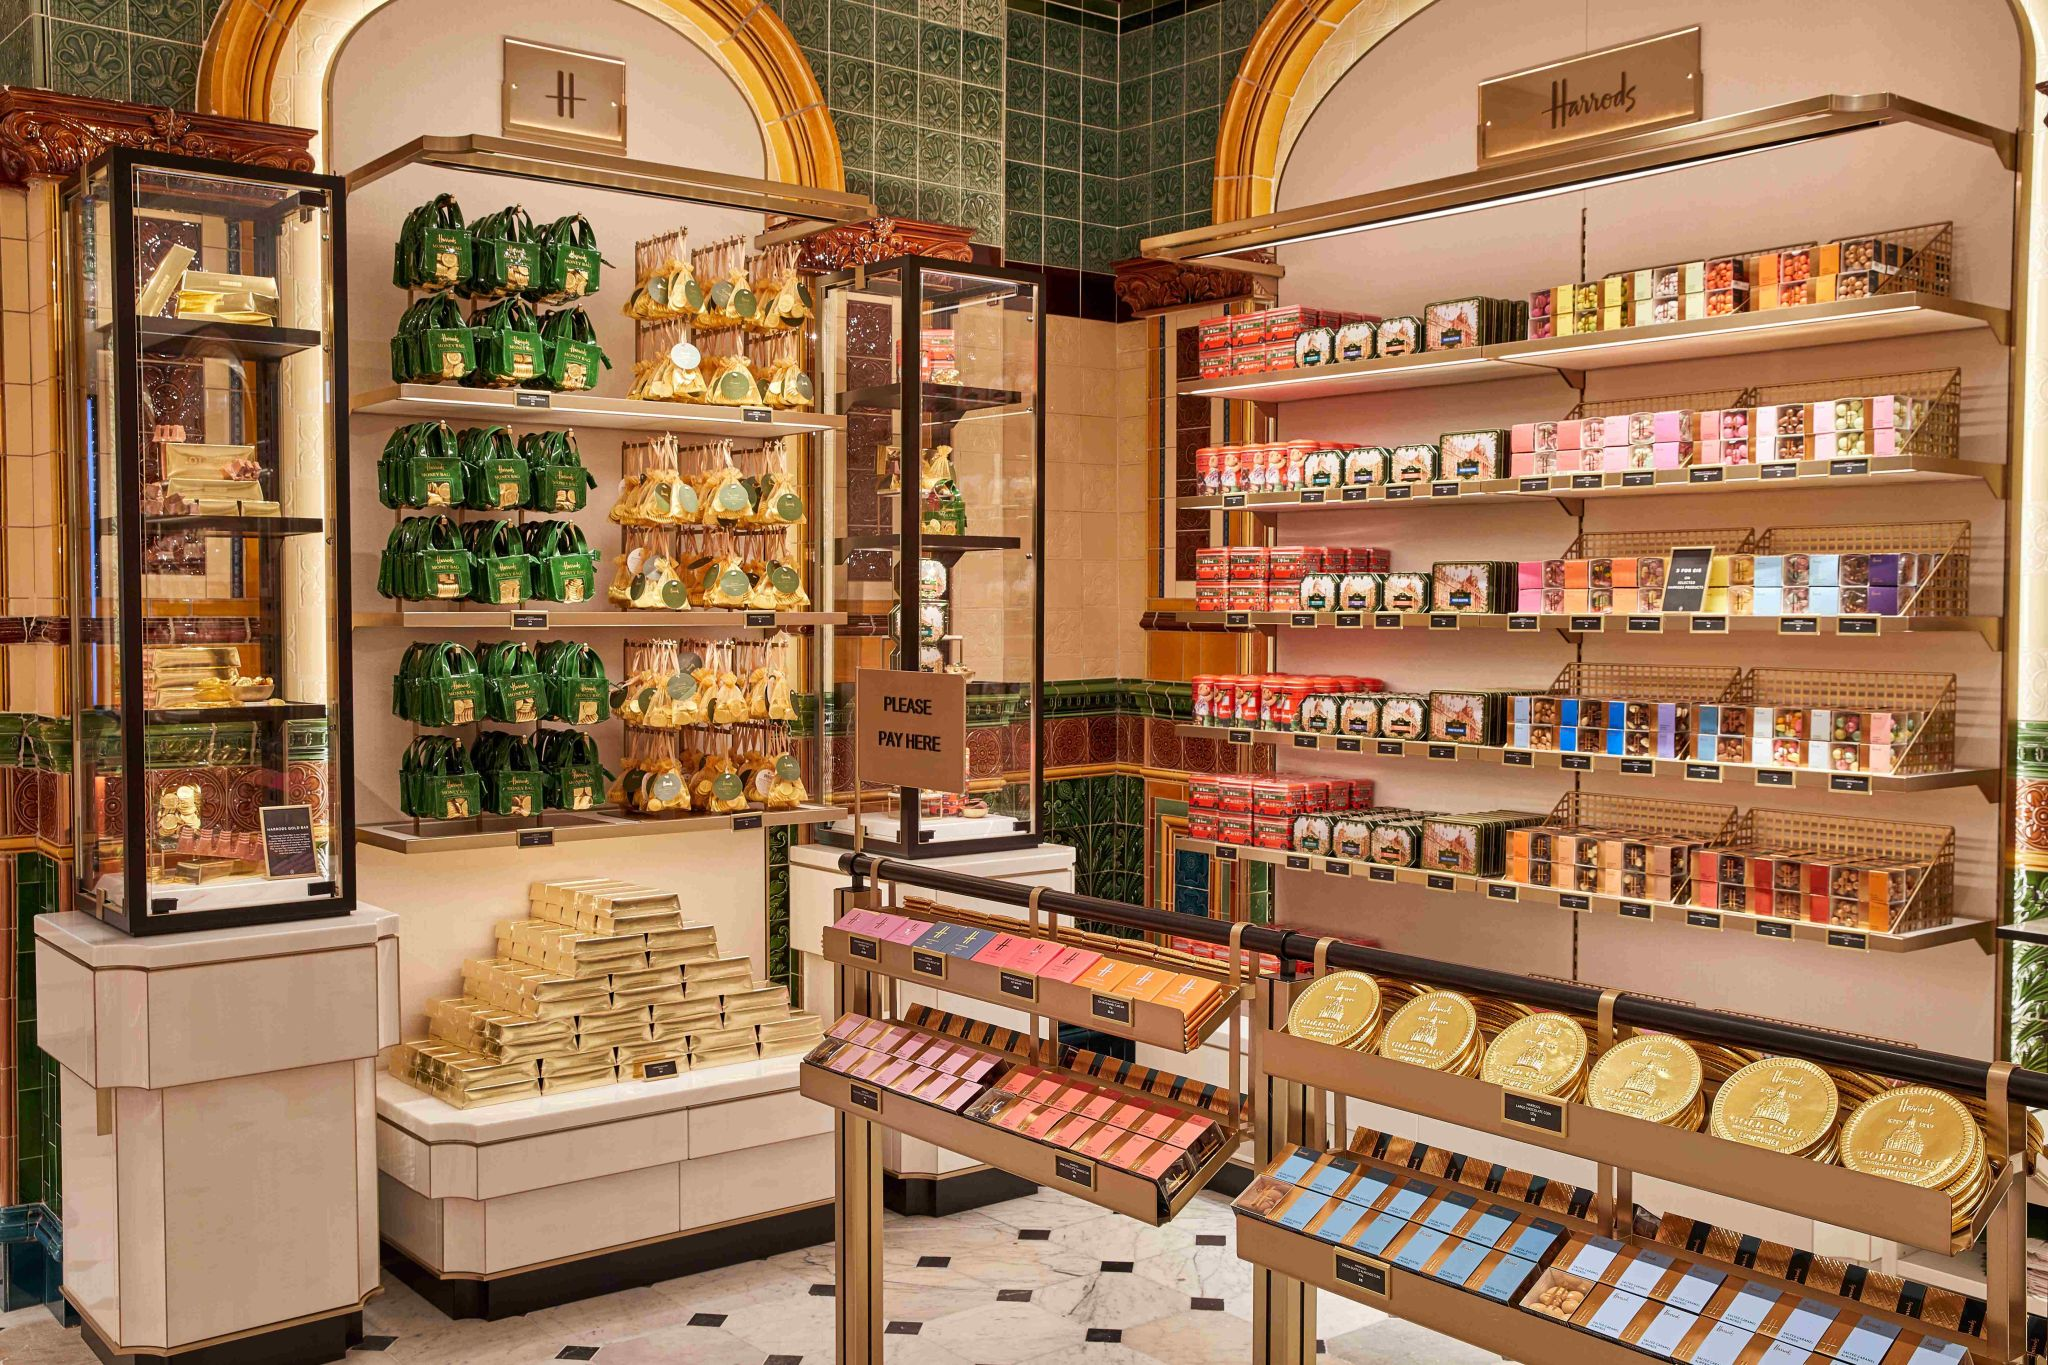 Harrods reveals its Chocolate Hall, the final transformation of the Food Hall